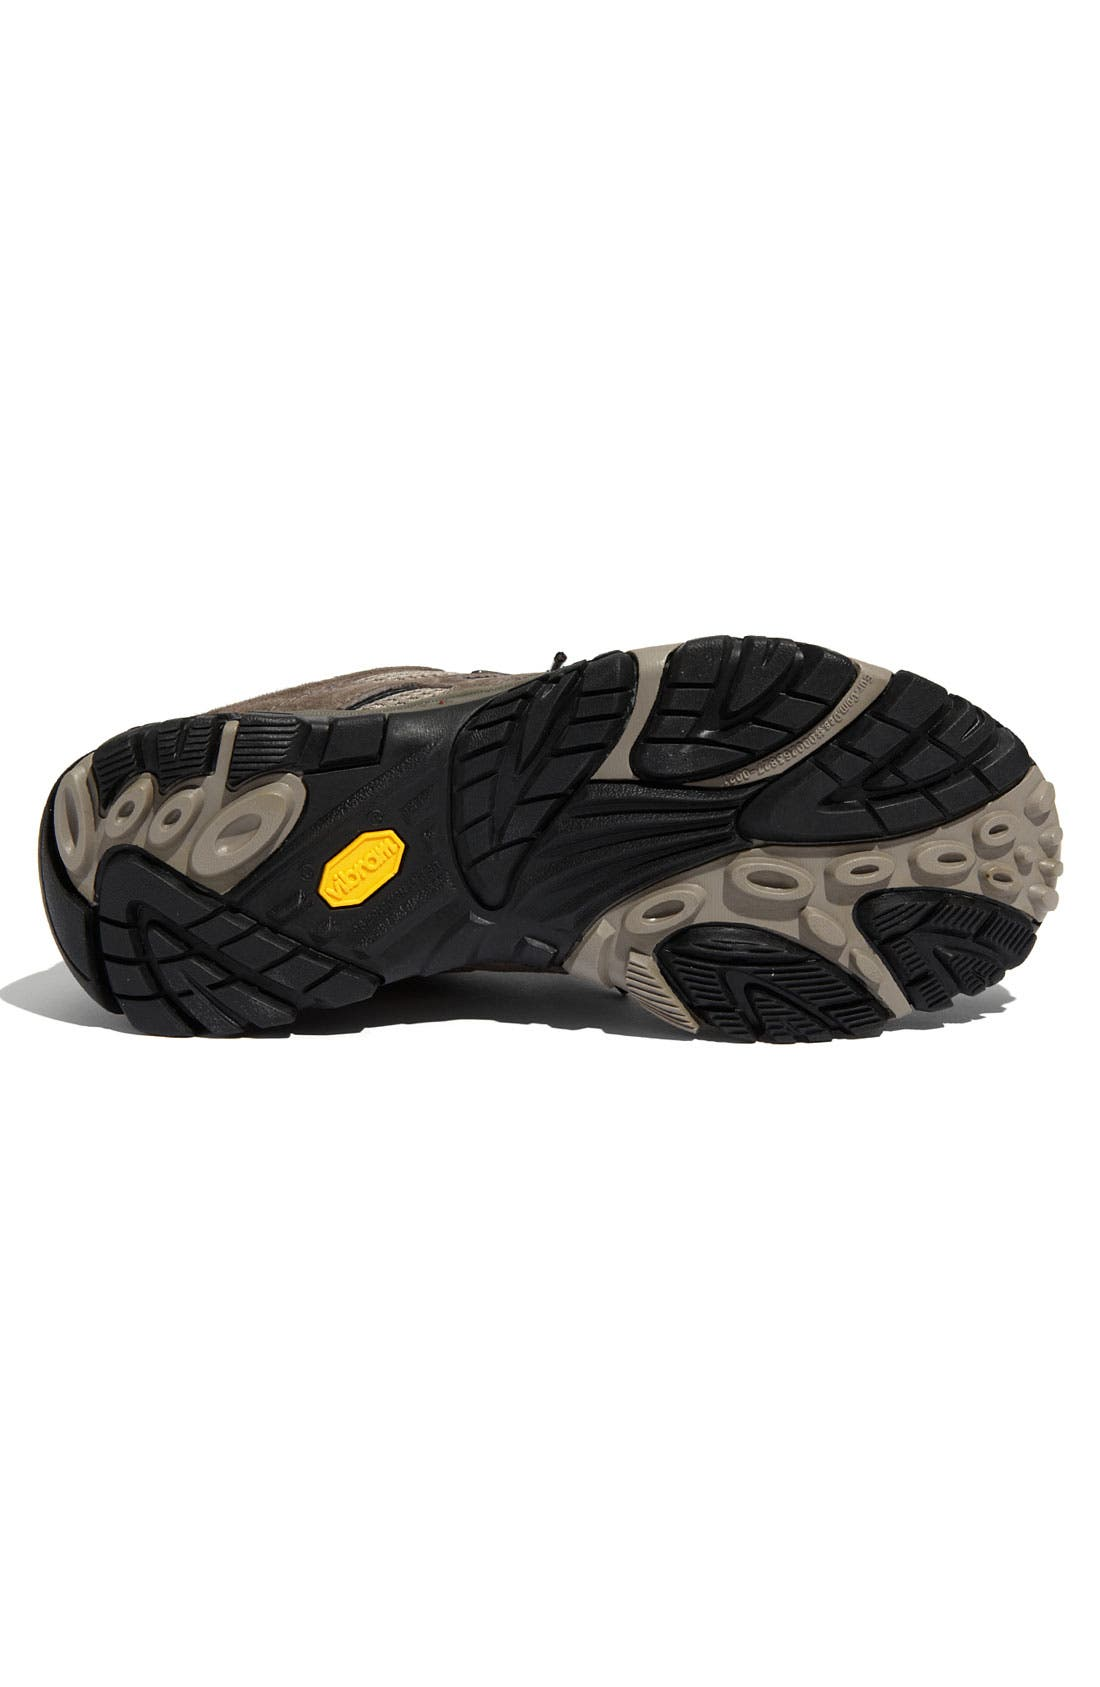 Alternate Image 4  - Merrell 'Moab' Waterproof Hiking Shoe (Men)